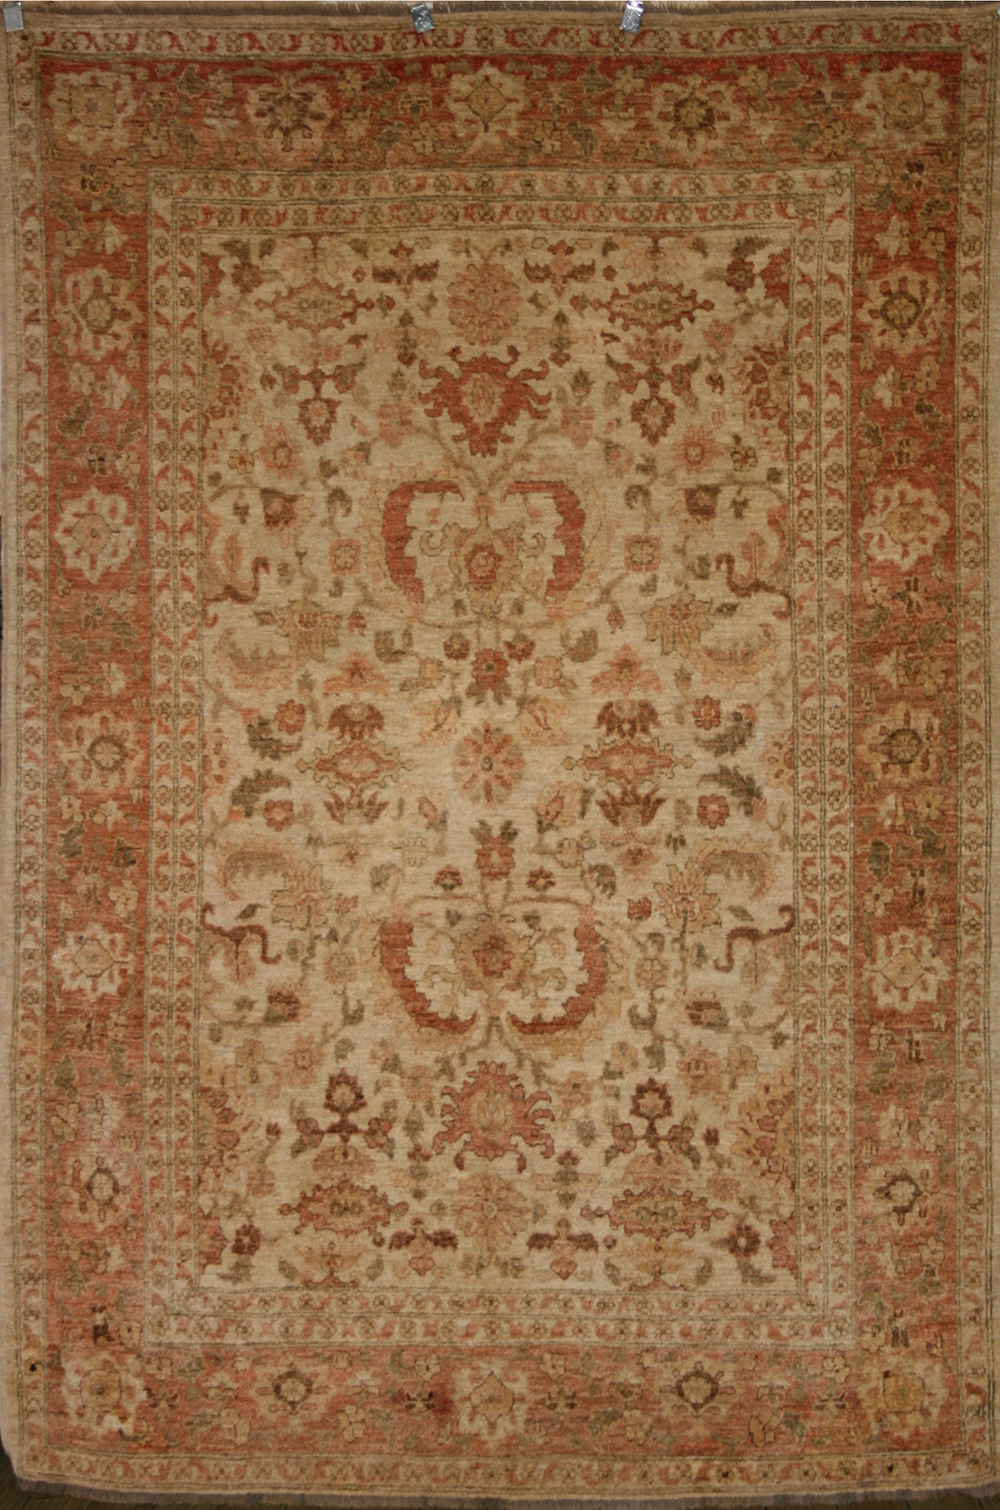 Oriental Hand Knotted Ziegler Rug In